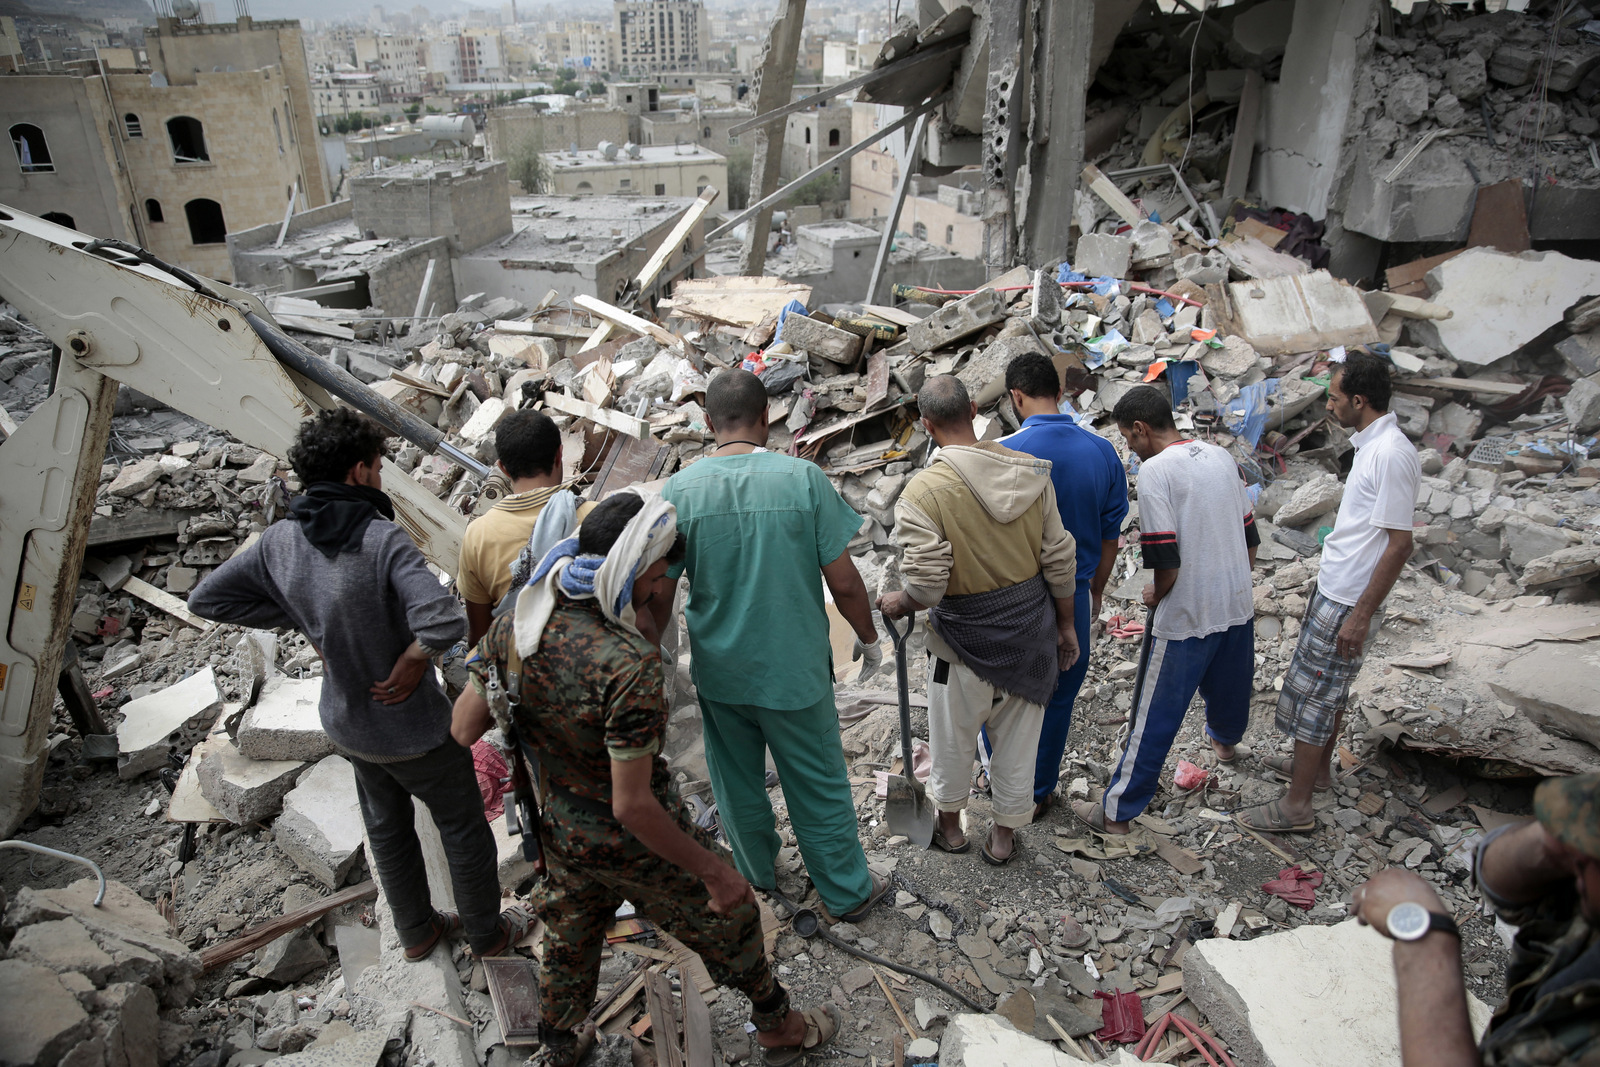 Yemeni Leaders Losing Confidence in UN as Negotiations Falter and Saudi Airstrikes Continue